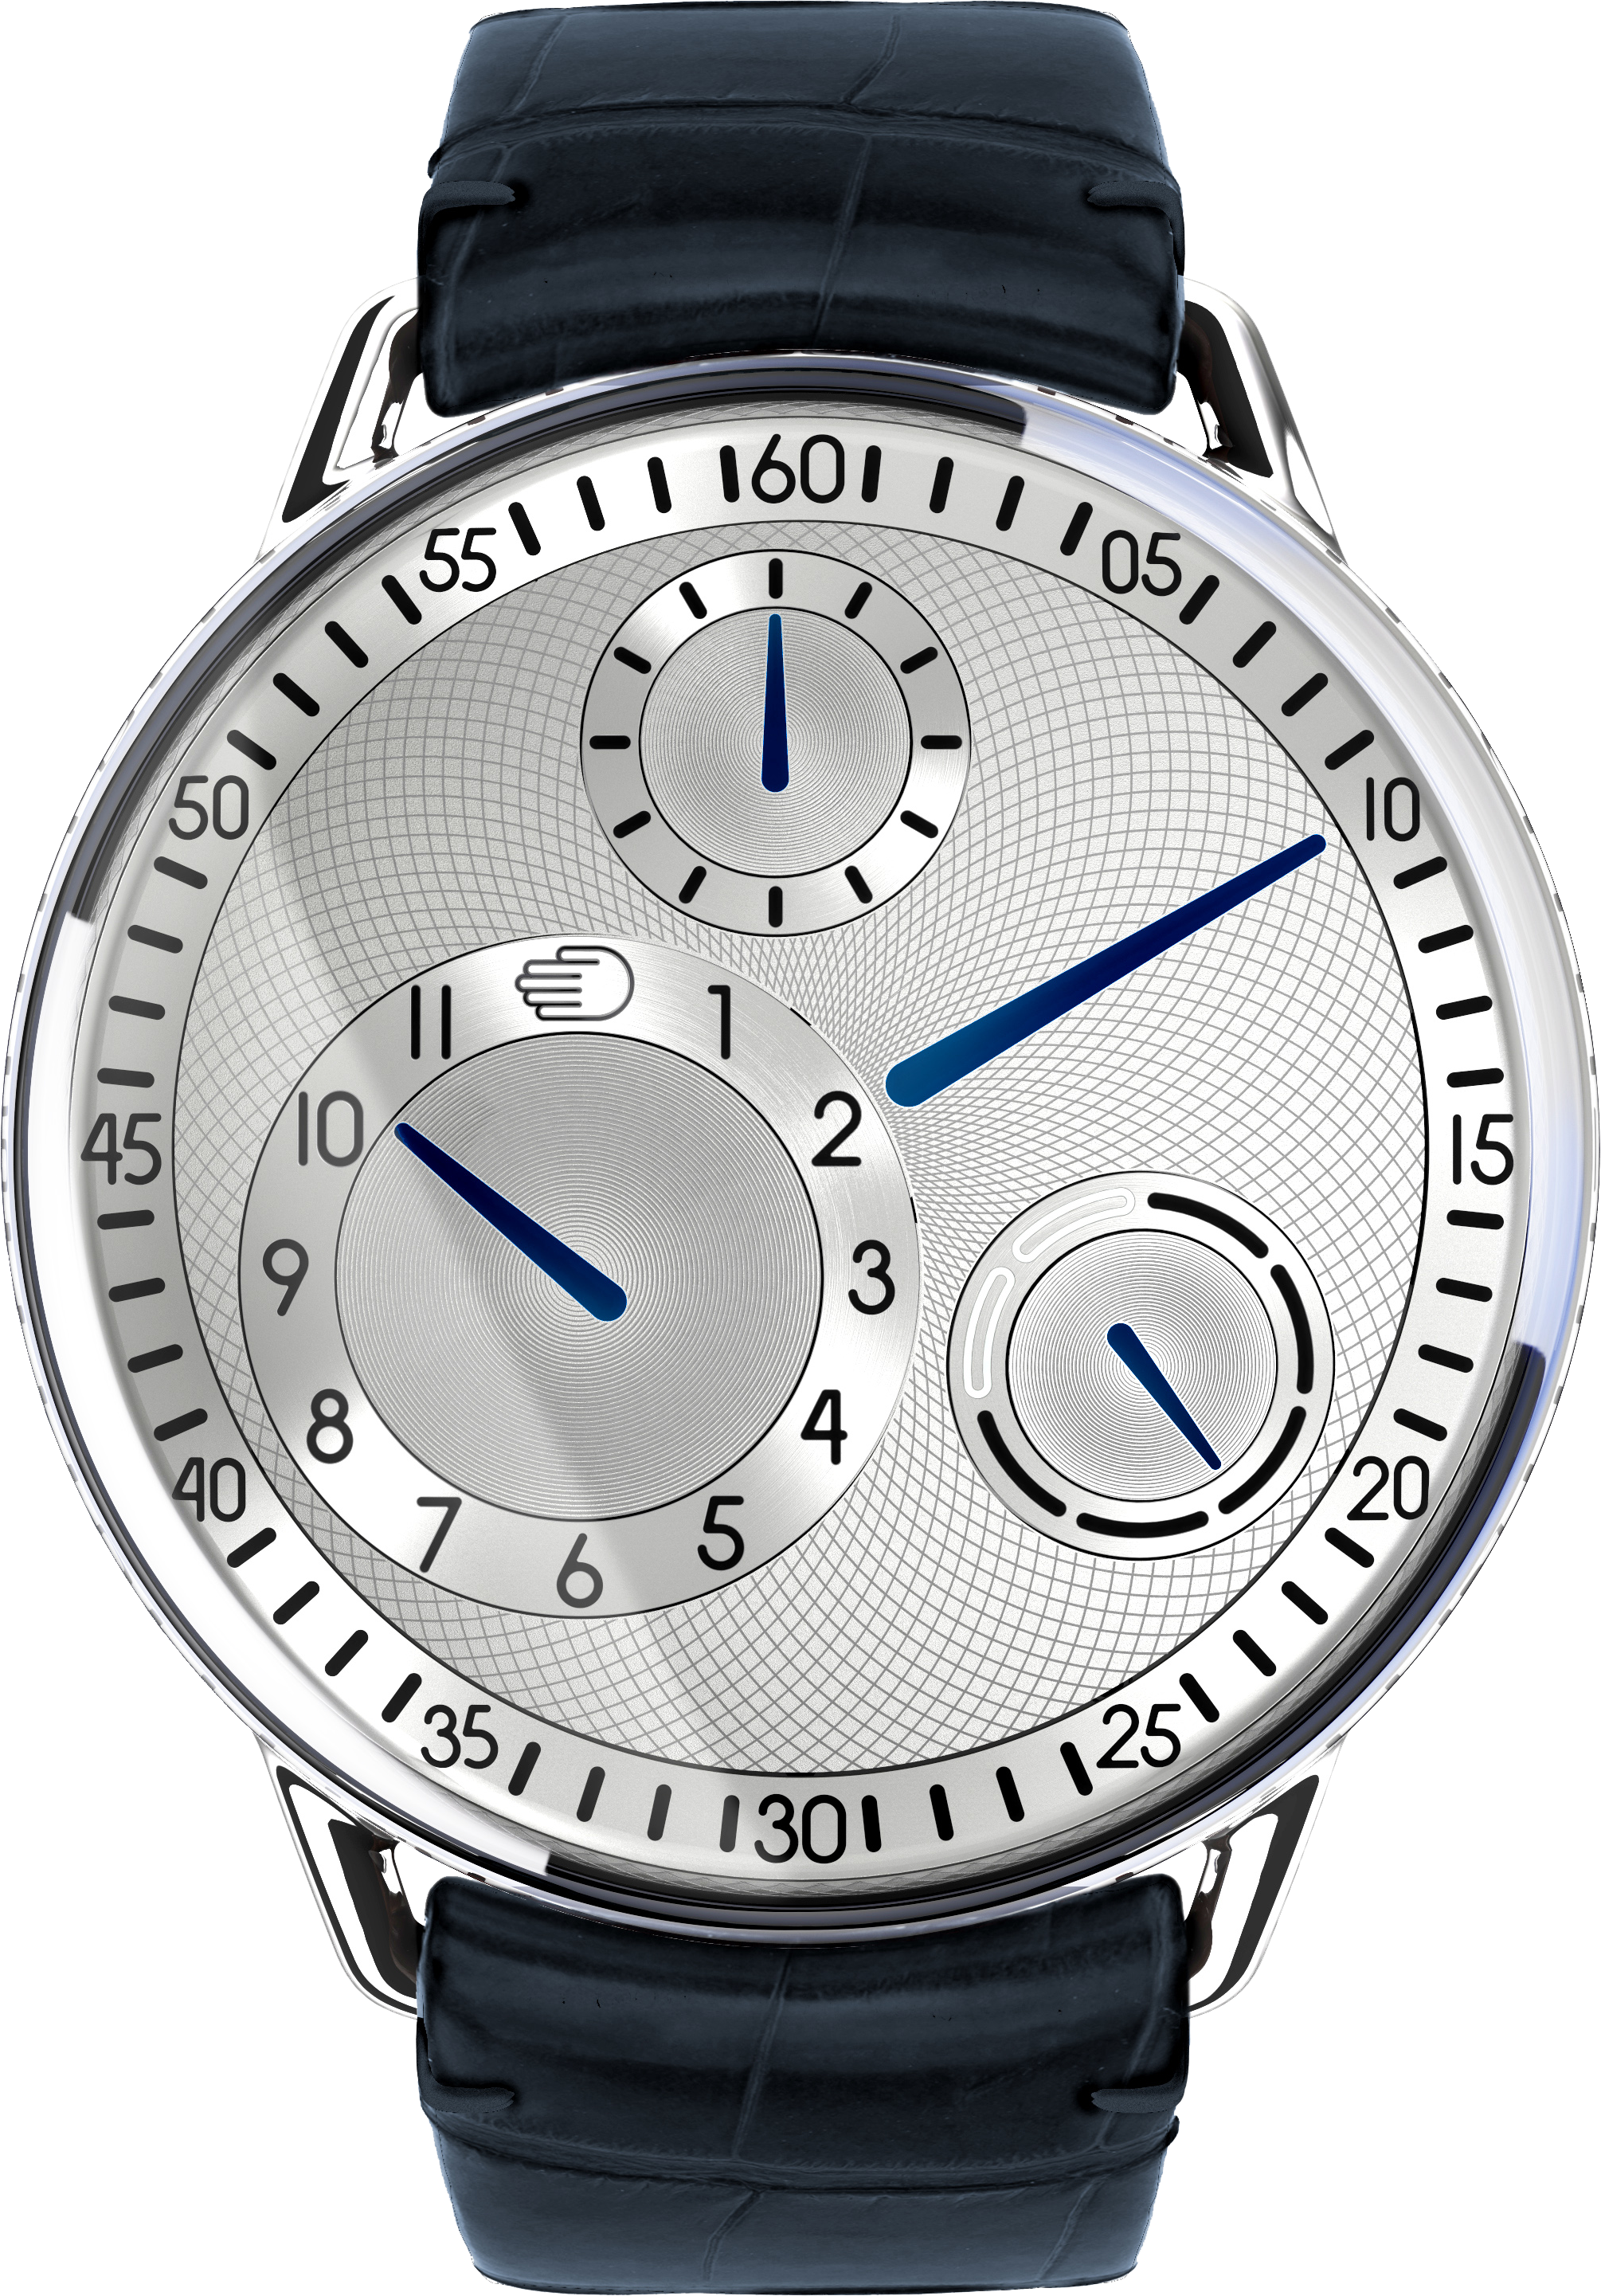 Type 1 Guilloche Dial